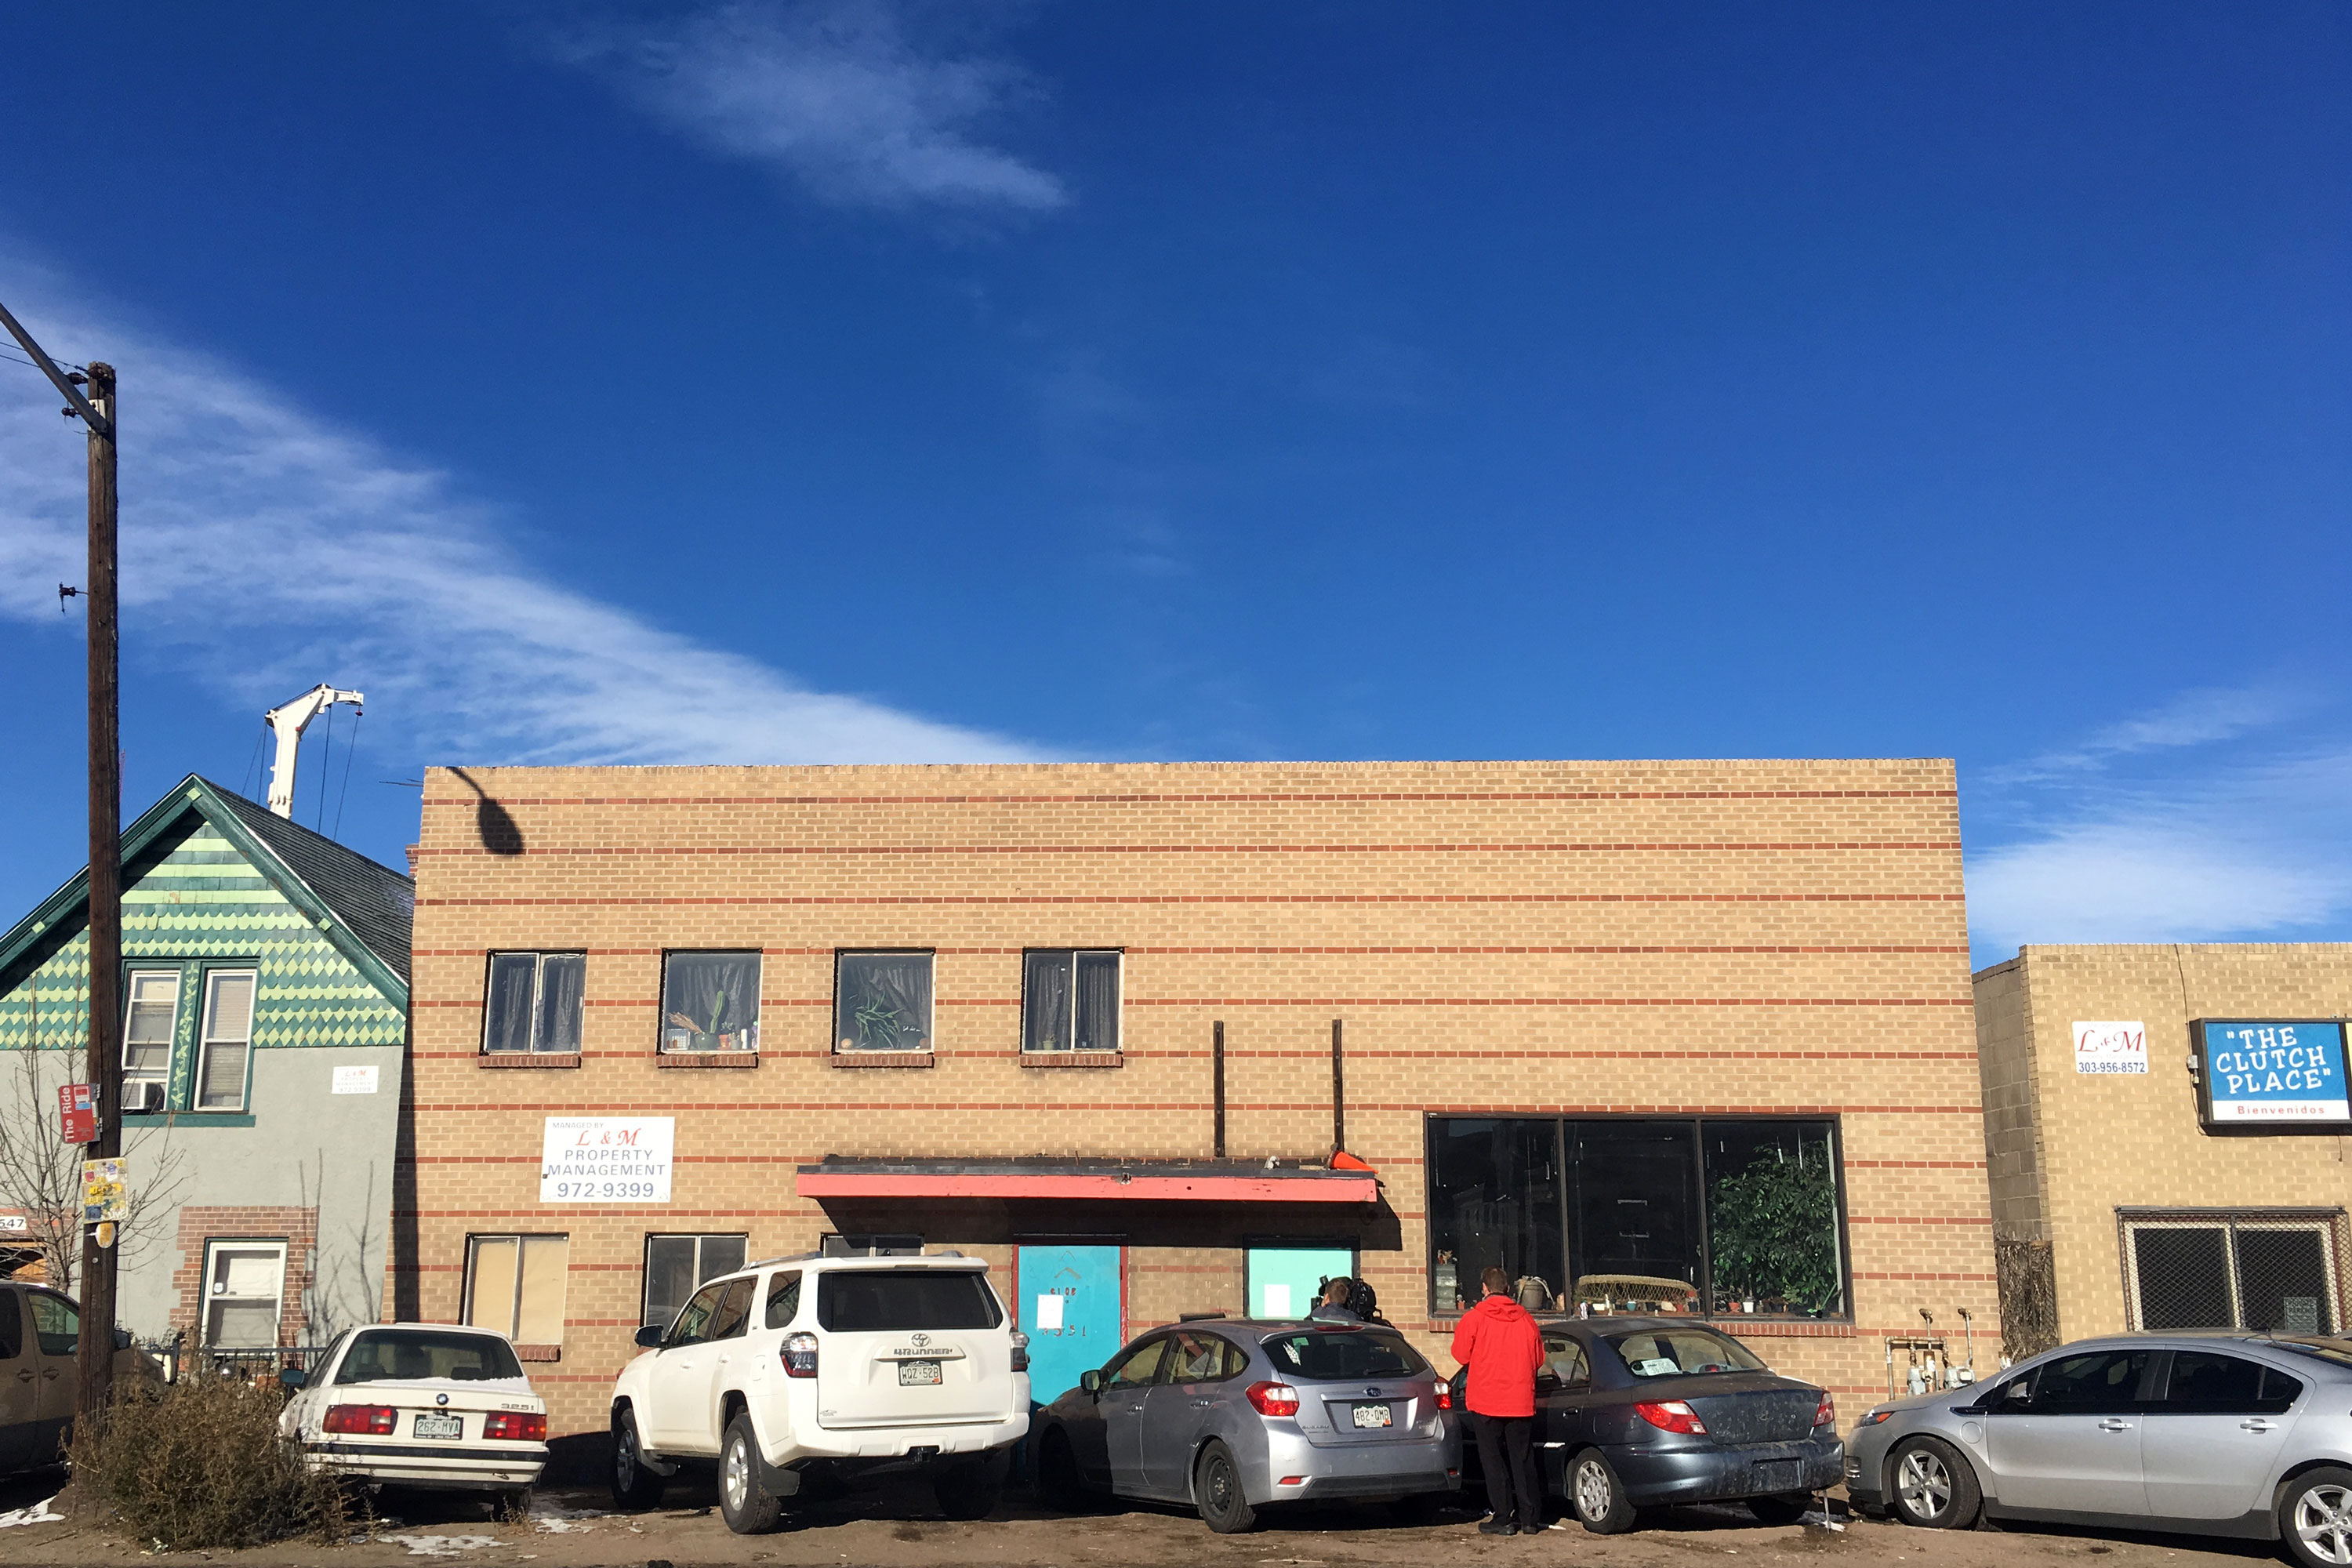 <p>The front of the warehouse in Denver's RiNo district where artists gathered in adjacent spaces known as Rhinoceropolis and Glob. The building, located at 3551 Brighton Blvd., was closed by Denver fire inspectors for violations Dec. 8, 2016. Eleven people living in the building were told to vacate it.</p>